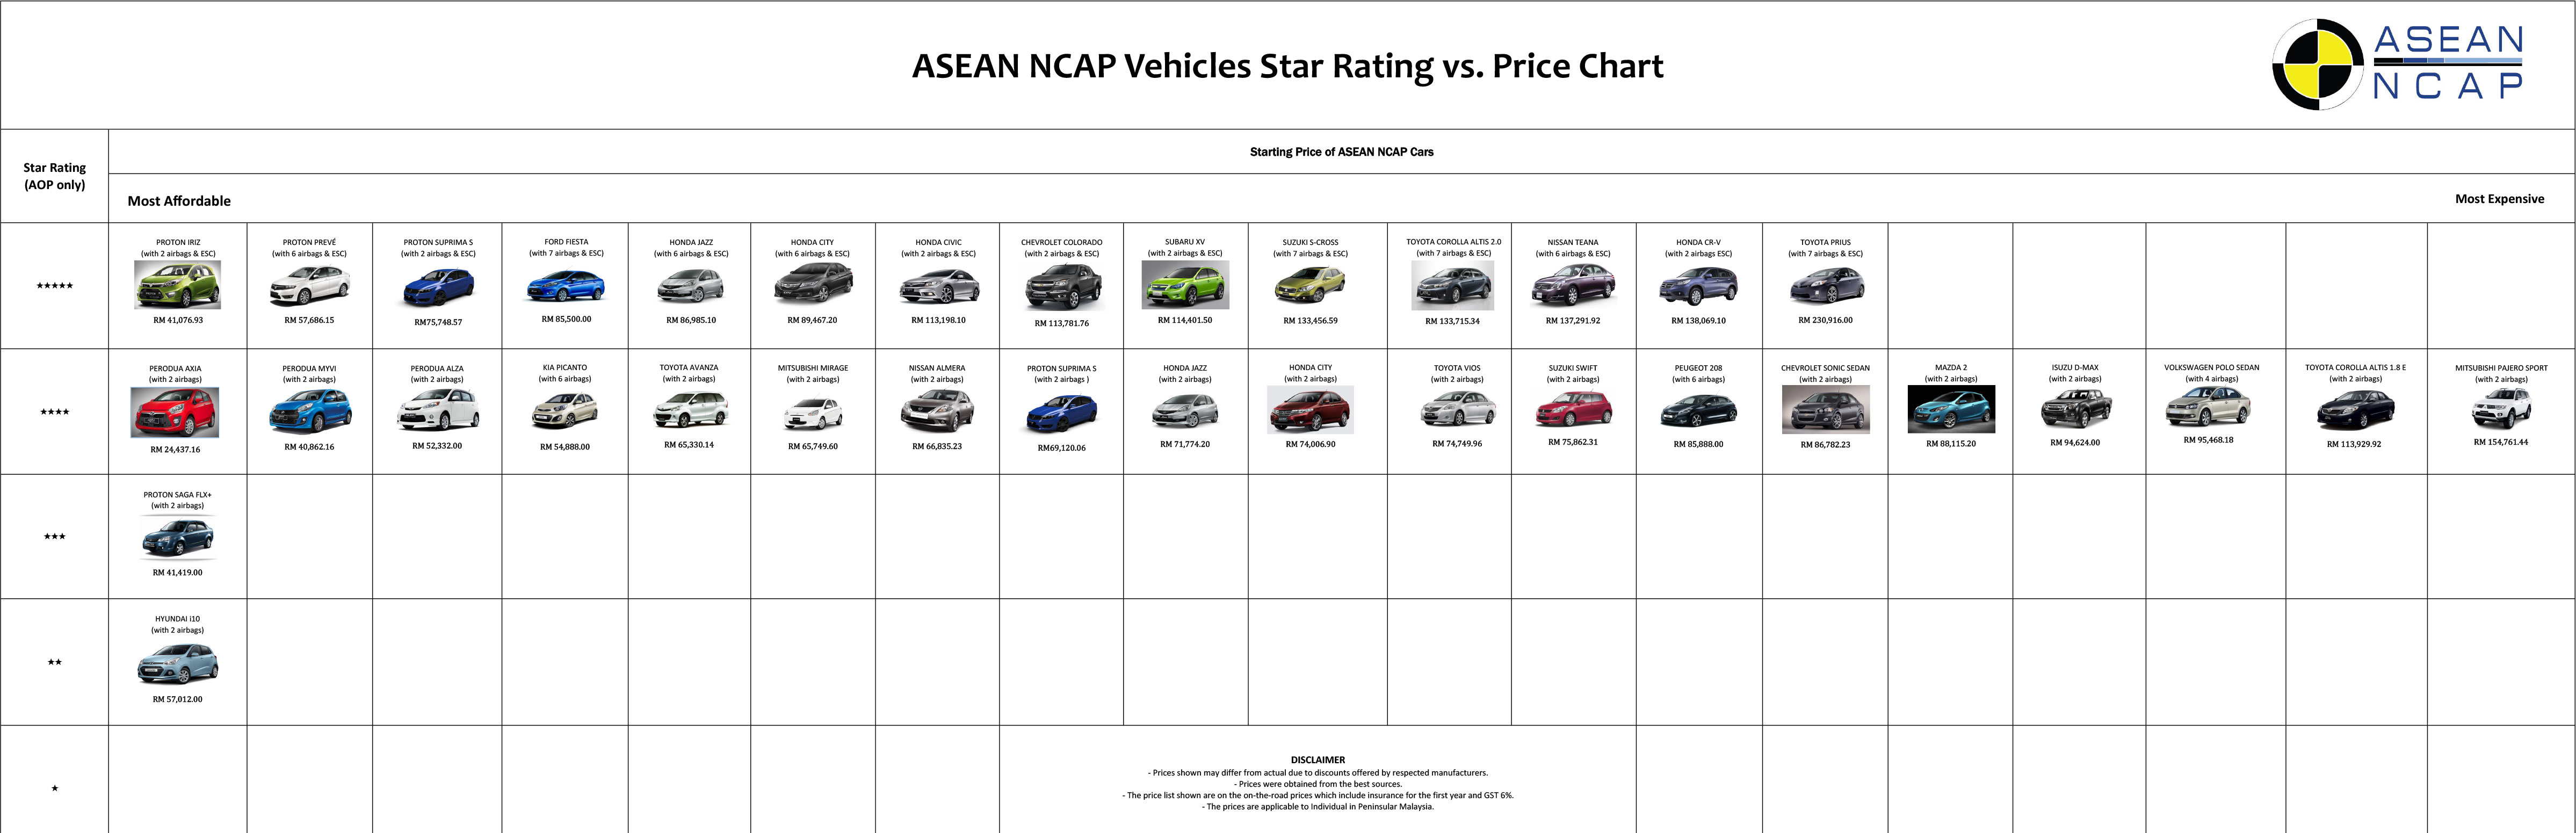 ASEAN NCAP releases star rating vs price chart – Proton Iriz is ...